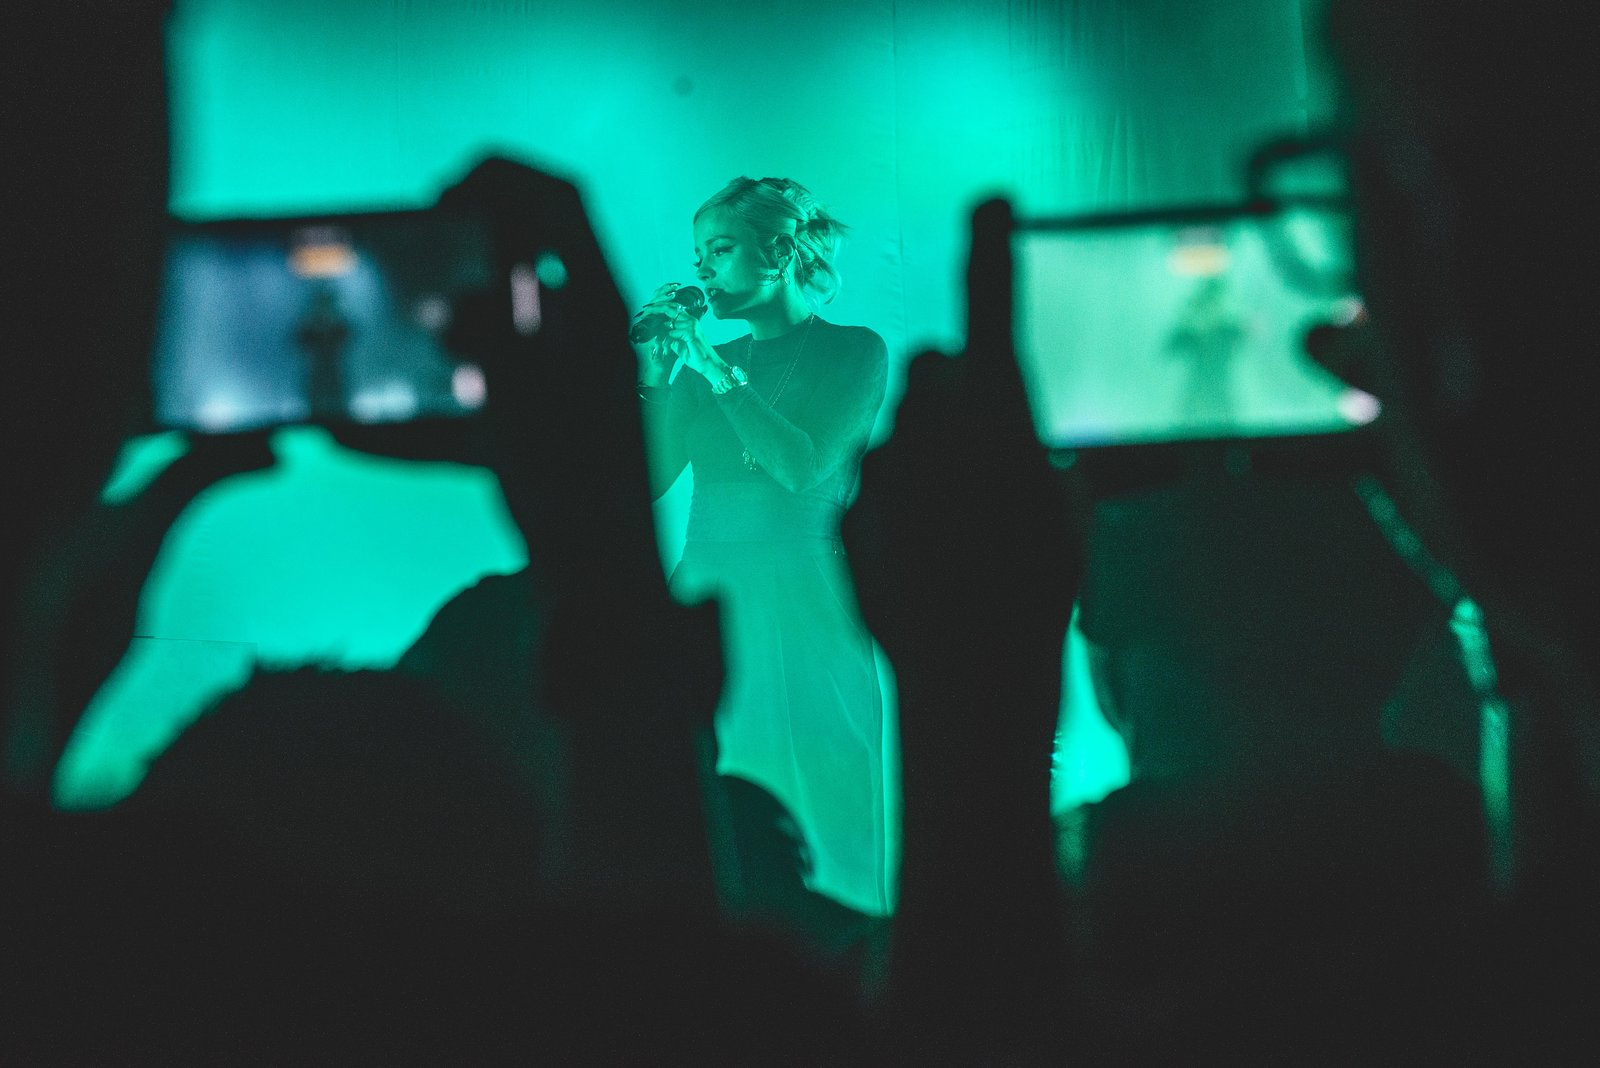 Lily Allen at The Dome Tufnell Park, London, March 2018